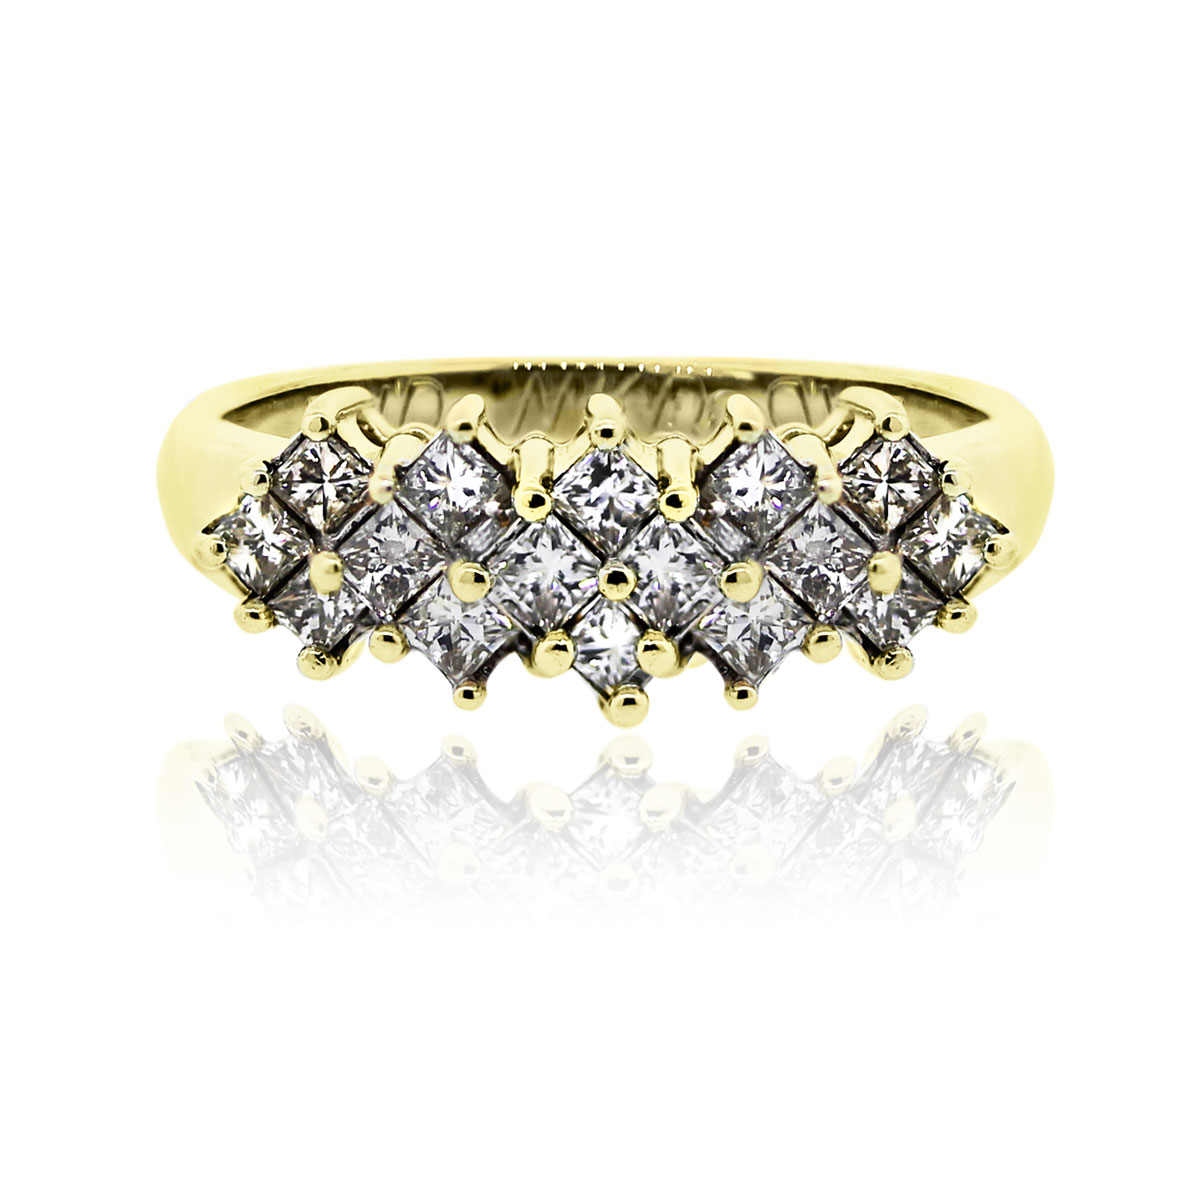 You are viewing this 14k Yellow Gold Princess Cut Cluster Diamond Band Ring!